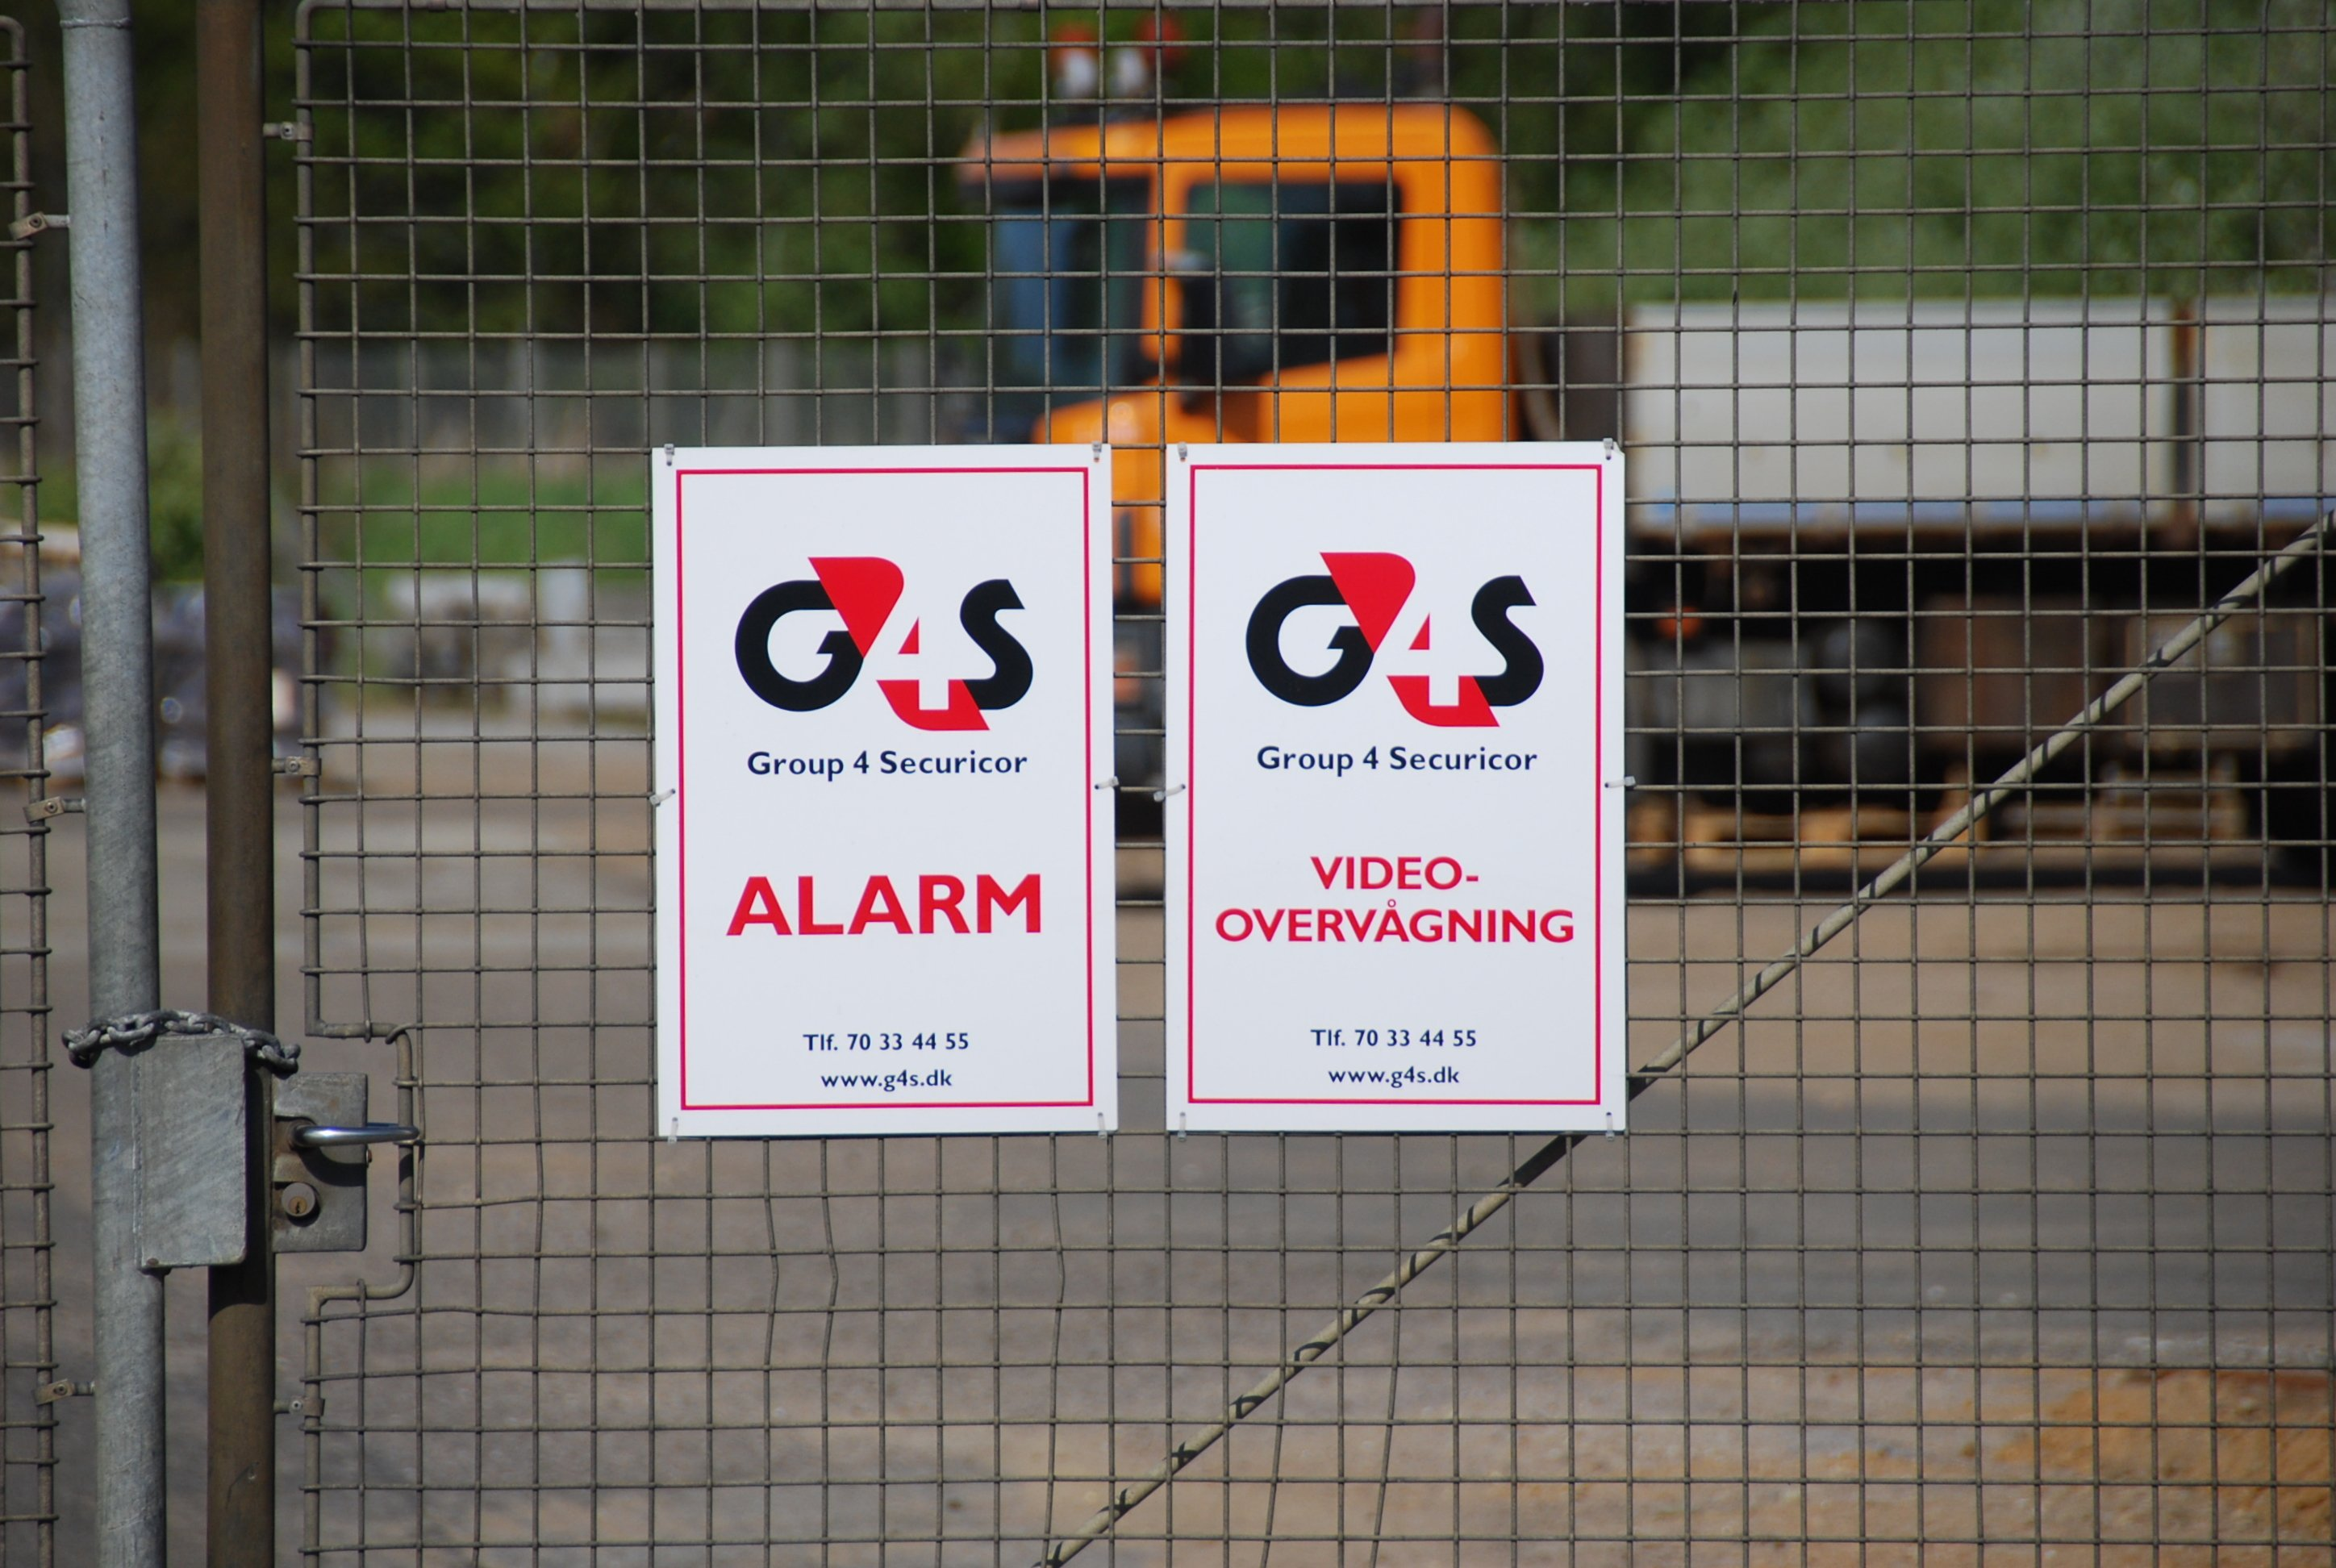 G4S goes cloud first, will shift to AWS in the UK - DCD